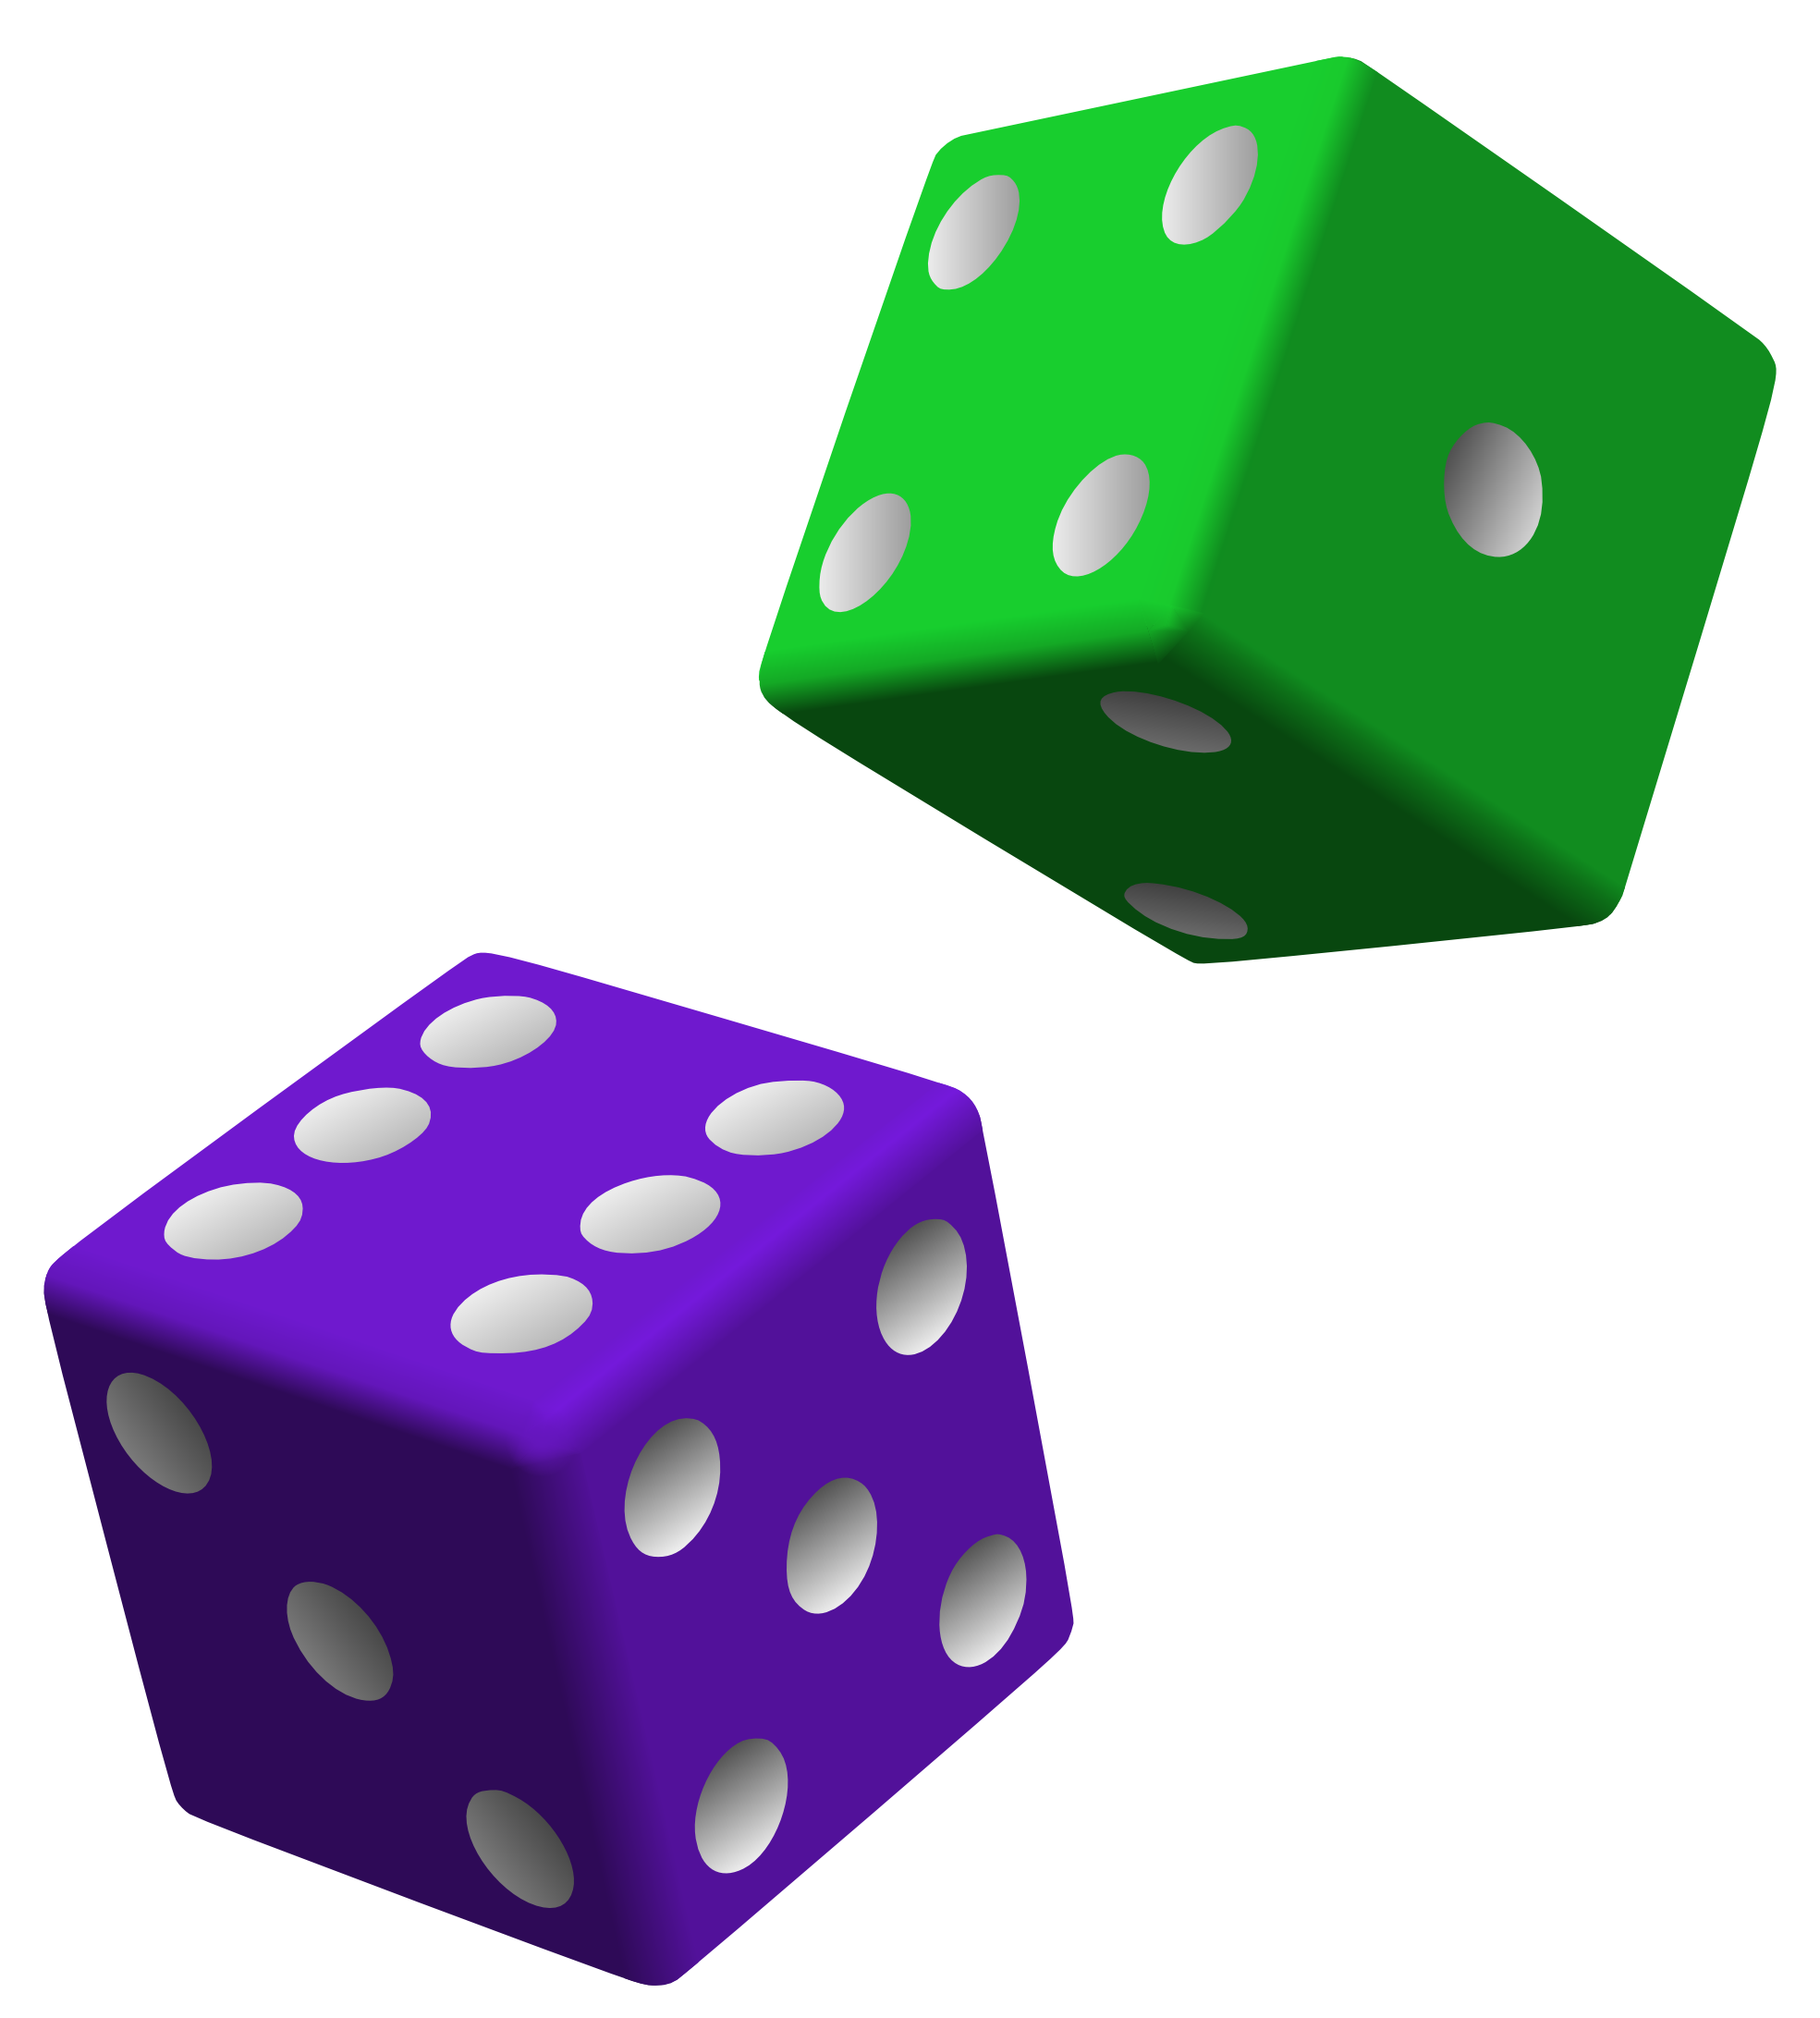 Dice clipart colored dice. Purple green png free